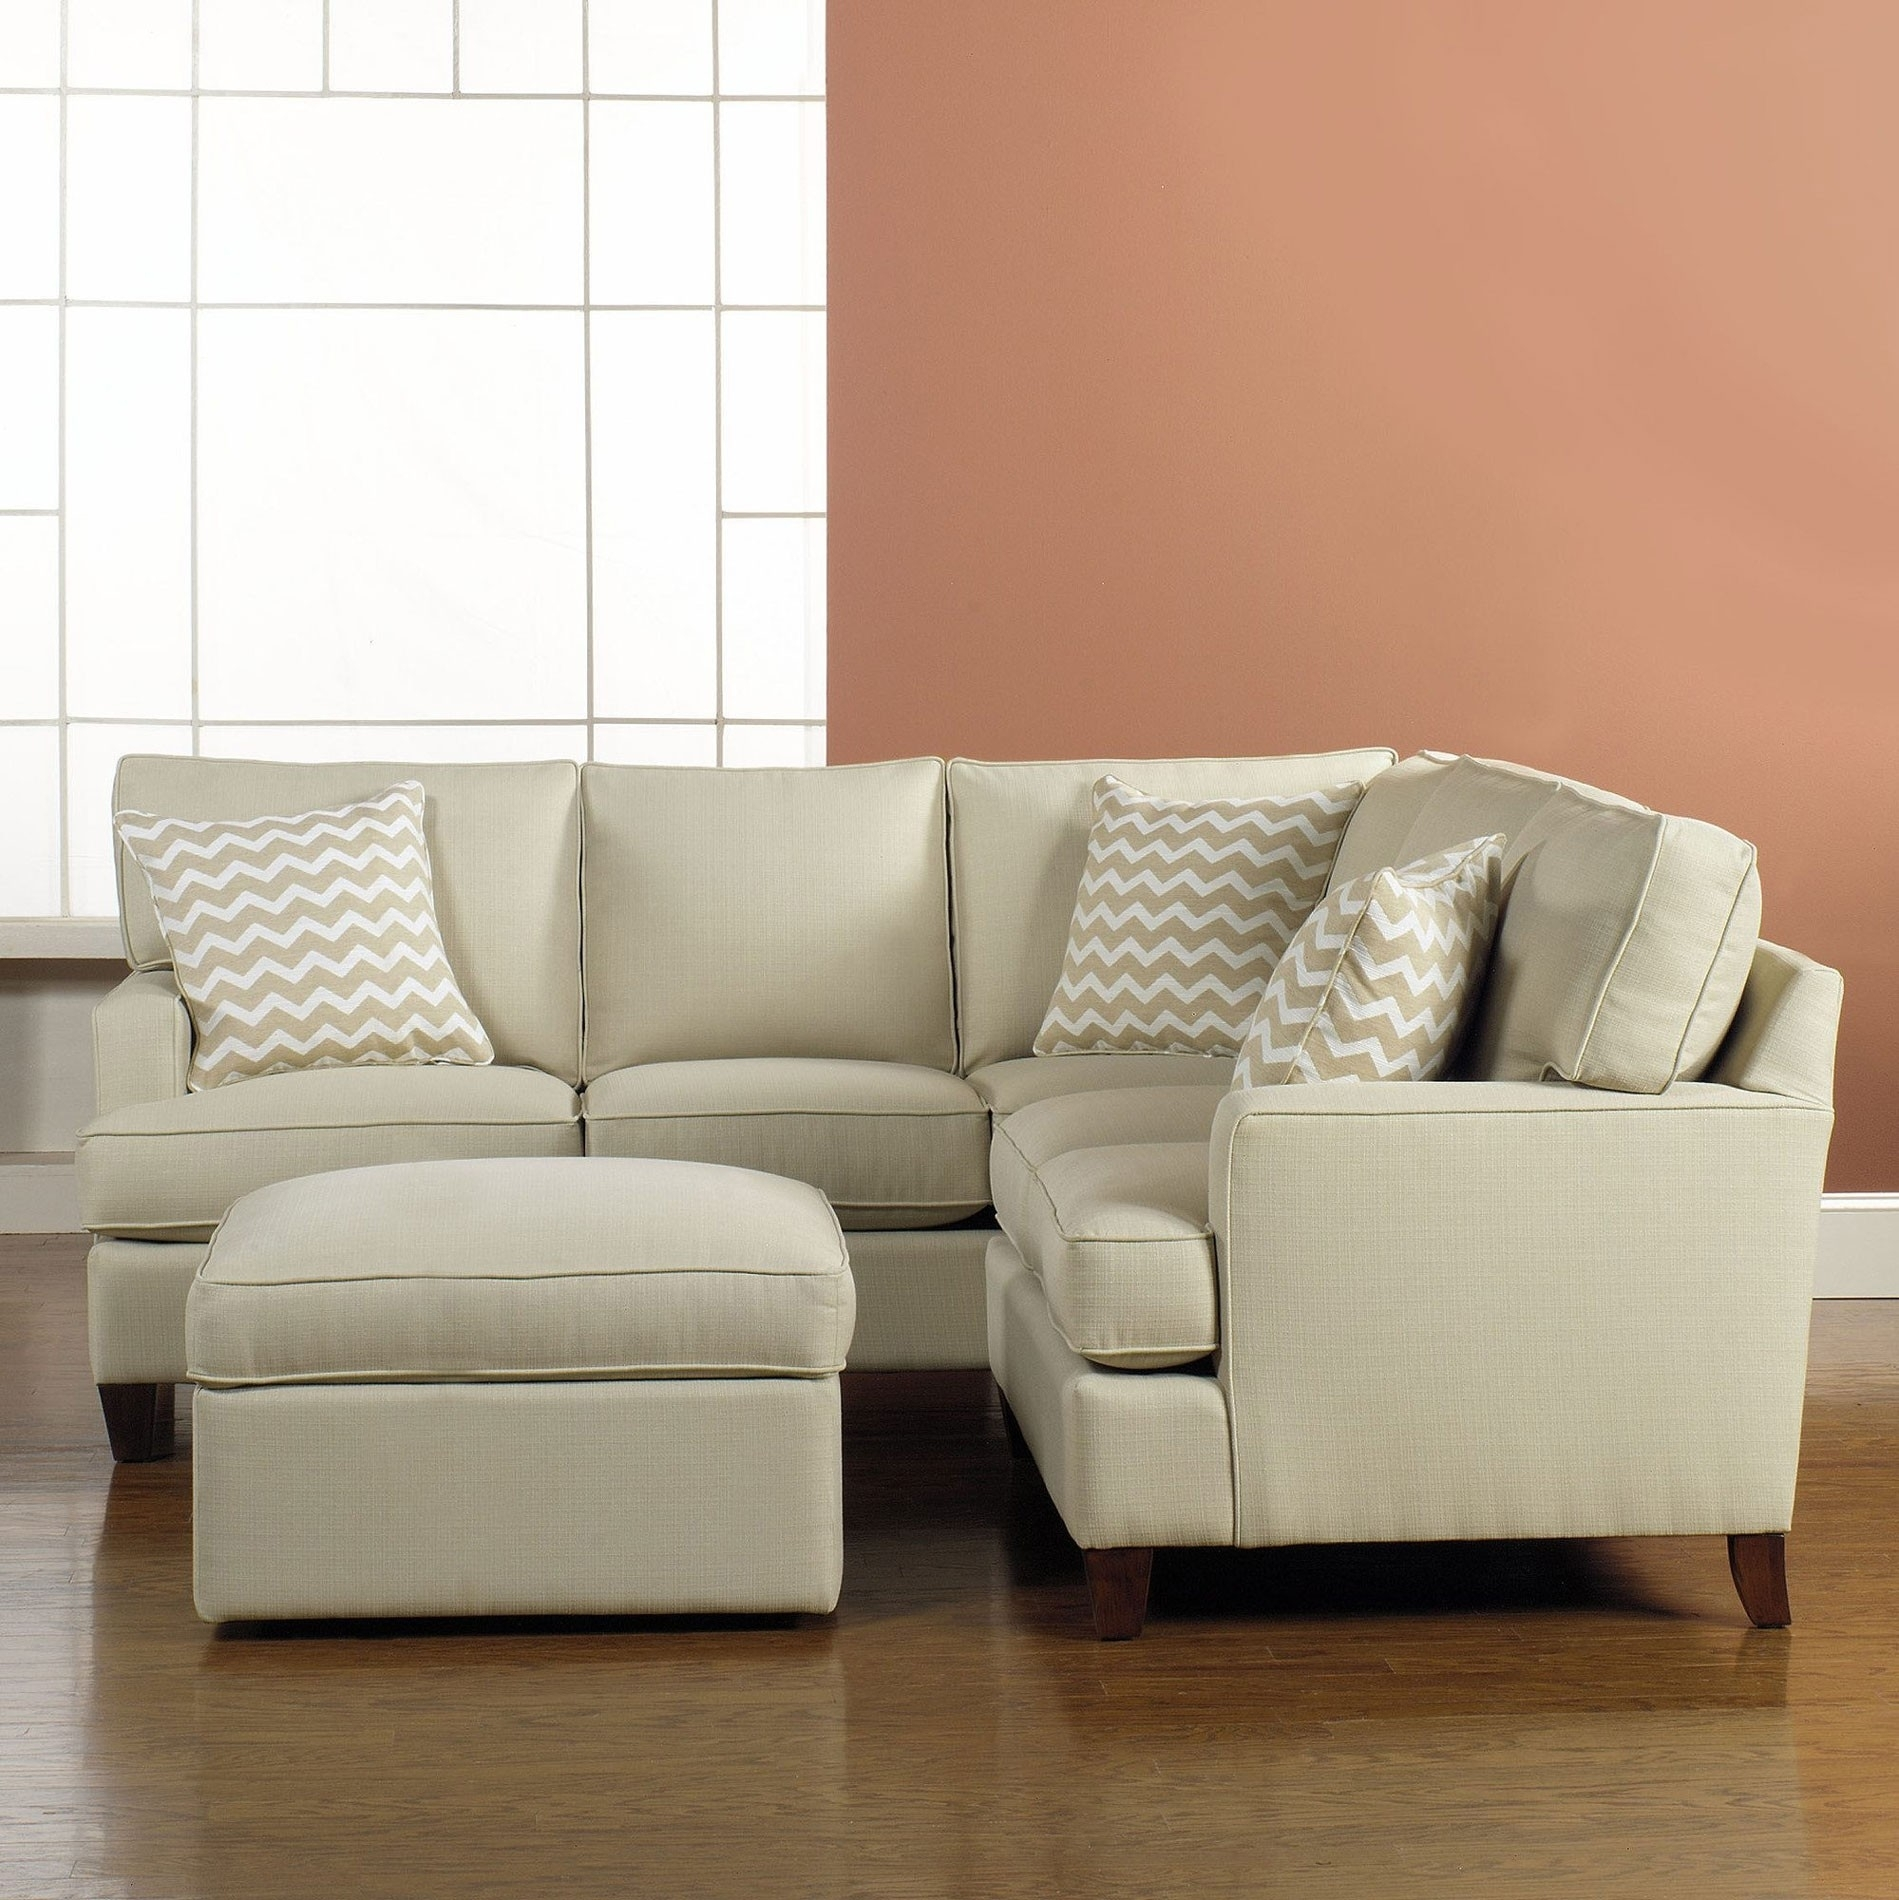 Small Loveseats For Apartments Modern Furniture Small Spaces Small With Regard To Sectional Sofas For Small Spaces (View 8 of 10)